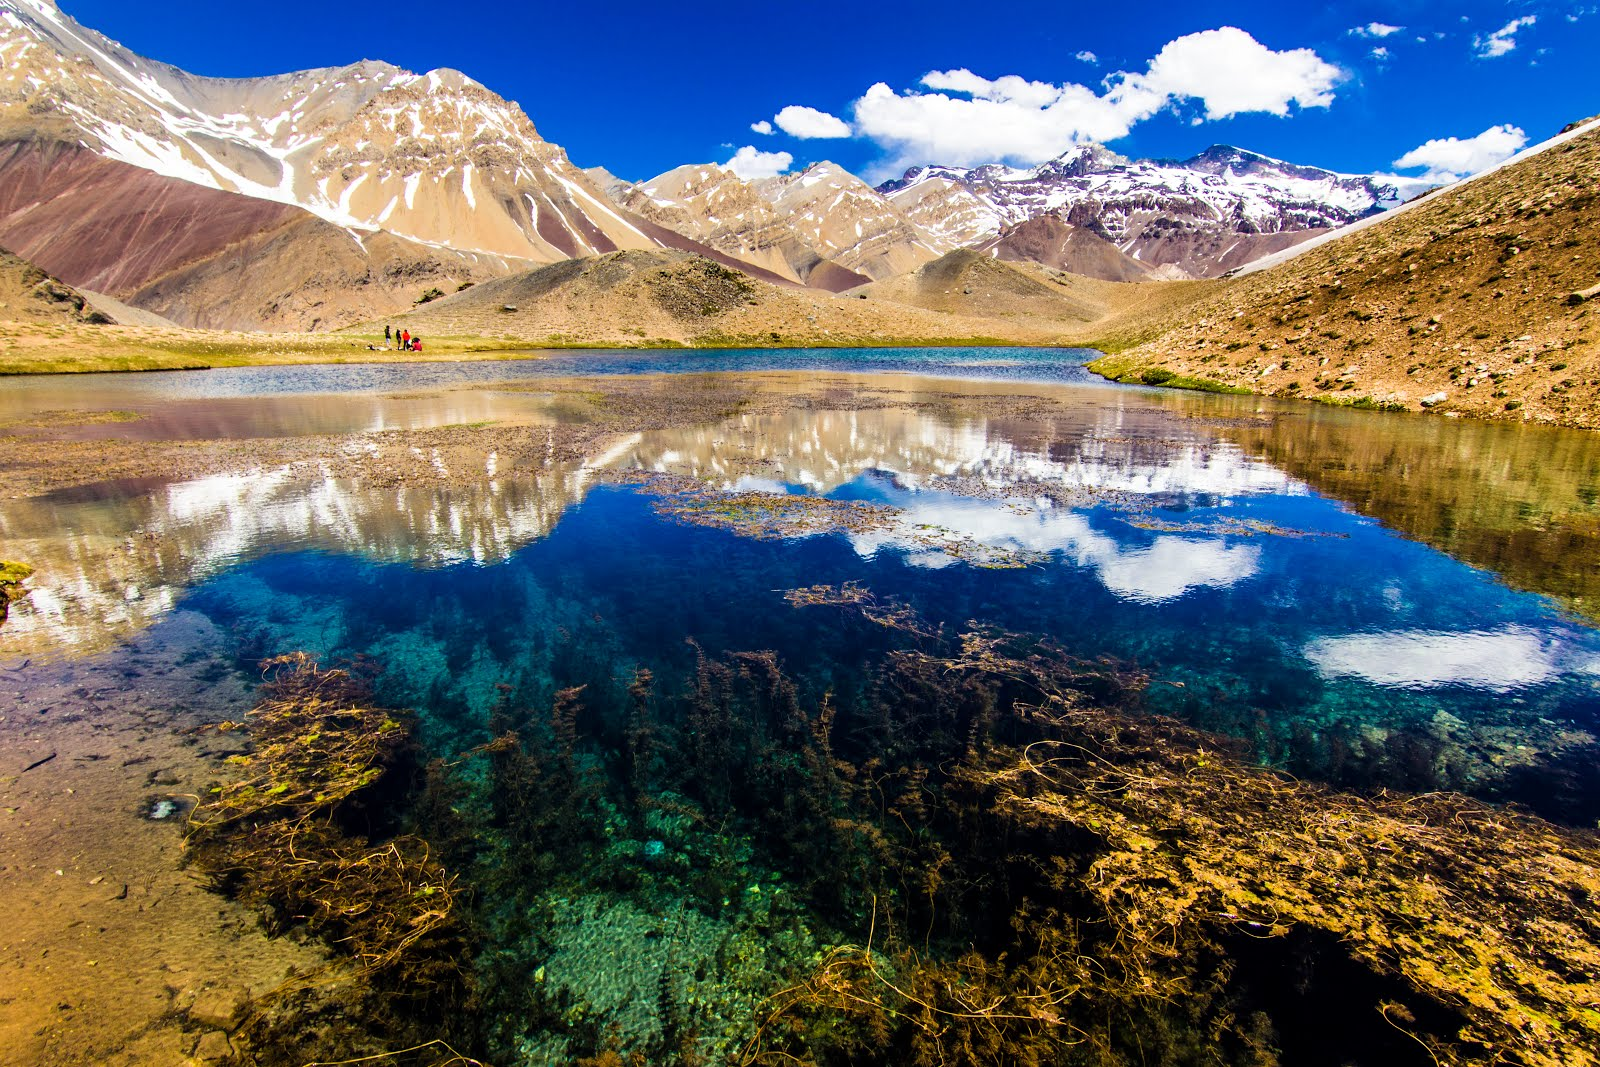 Embalse del yeso fotos 12